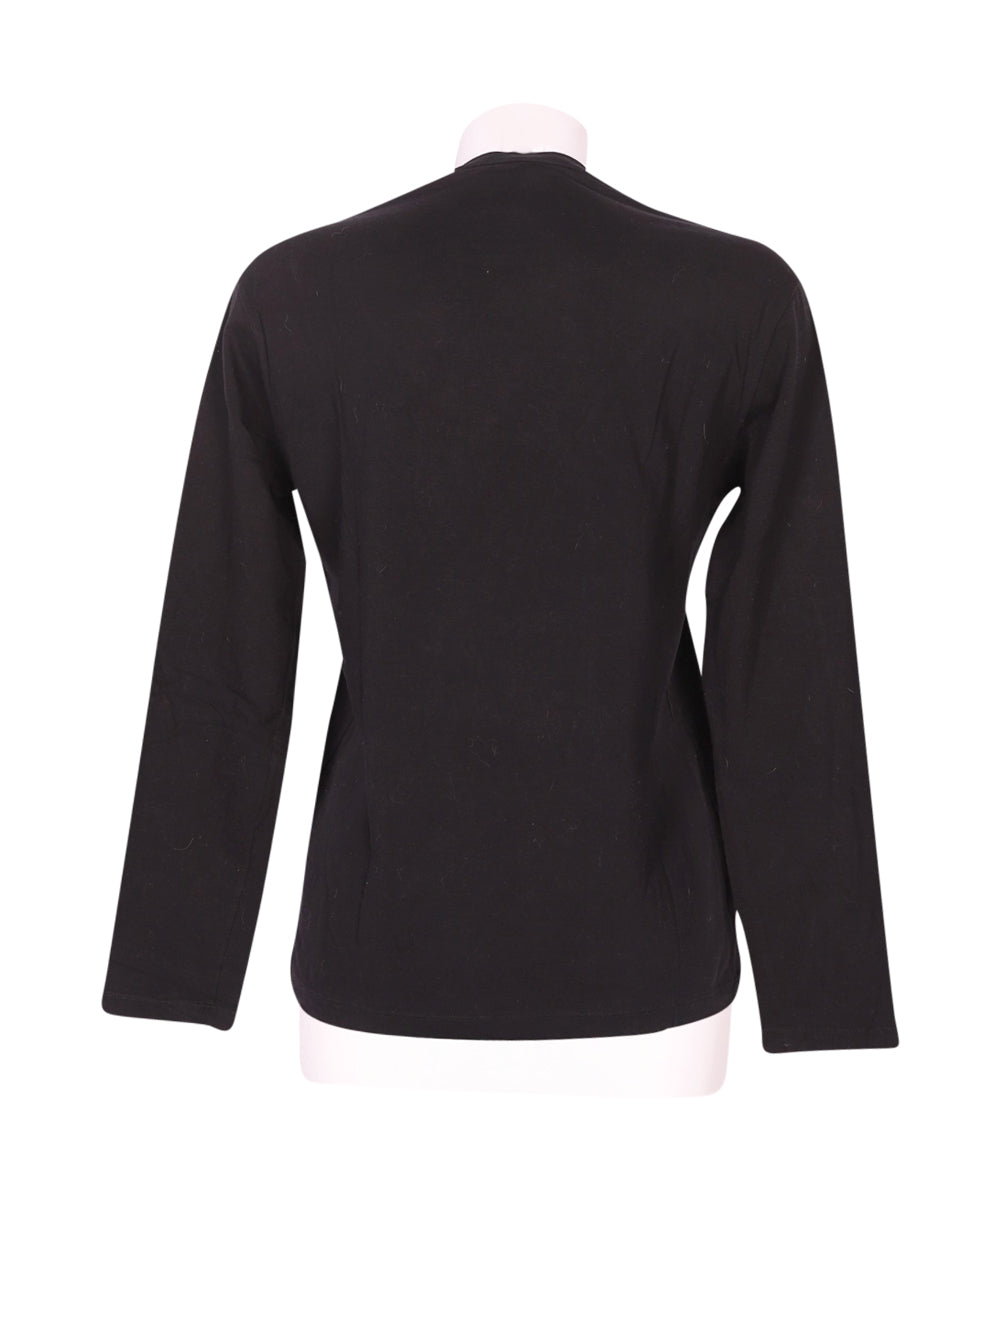 Back photo of Preloved Imperial Black Man's long sleeved shirt - size 38/M